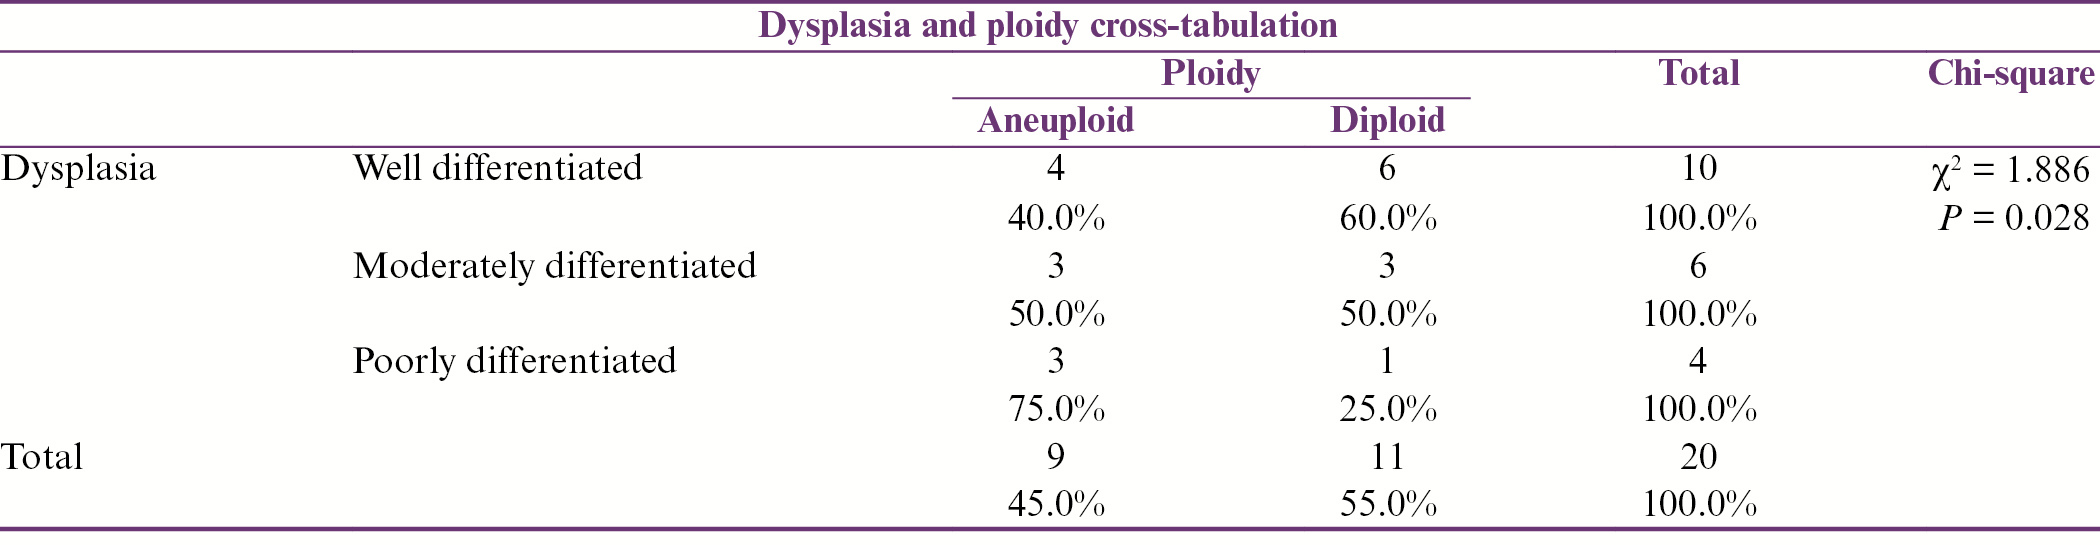 Table 3: Analysis of association of the degree of dysplasia with ploidy status in OSCC